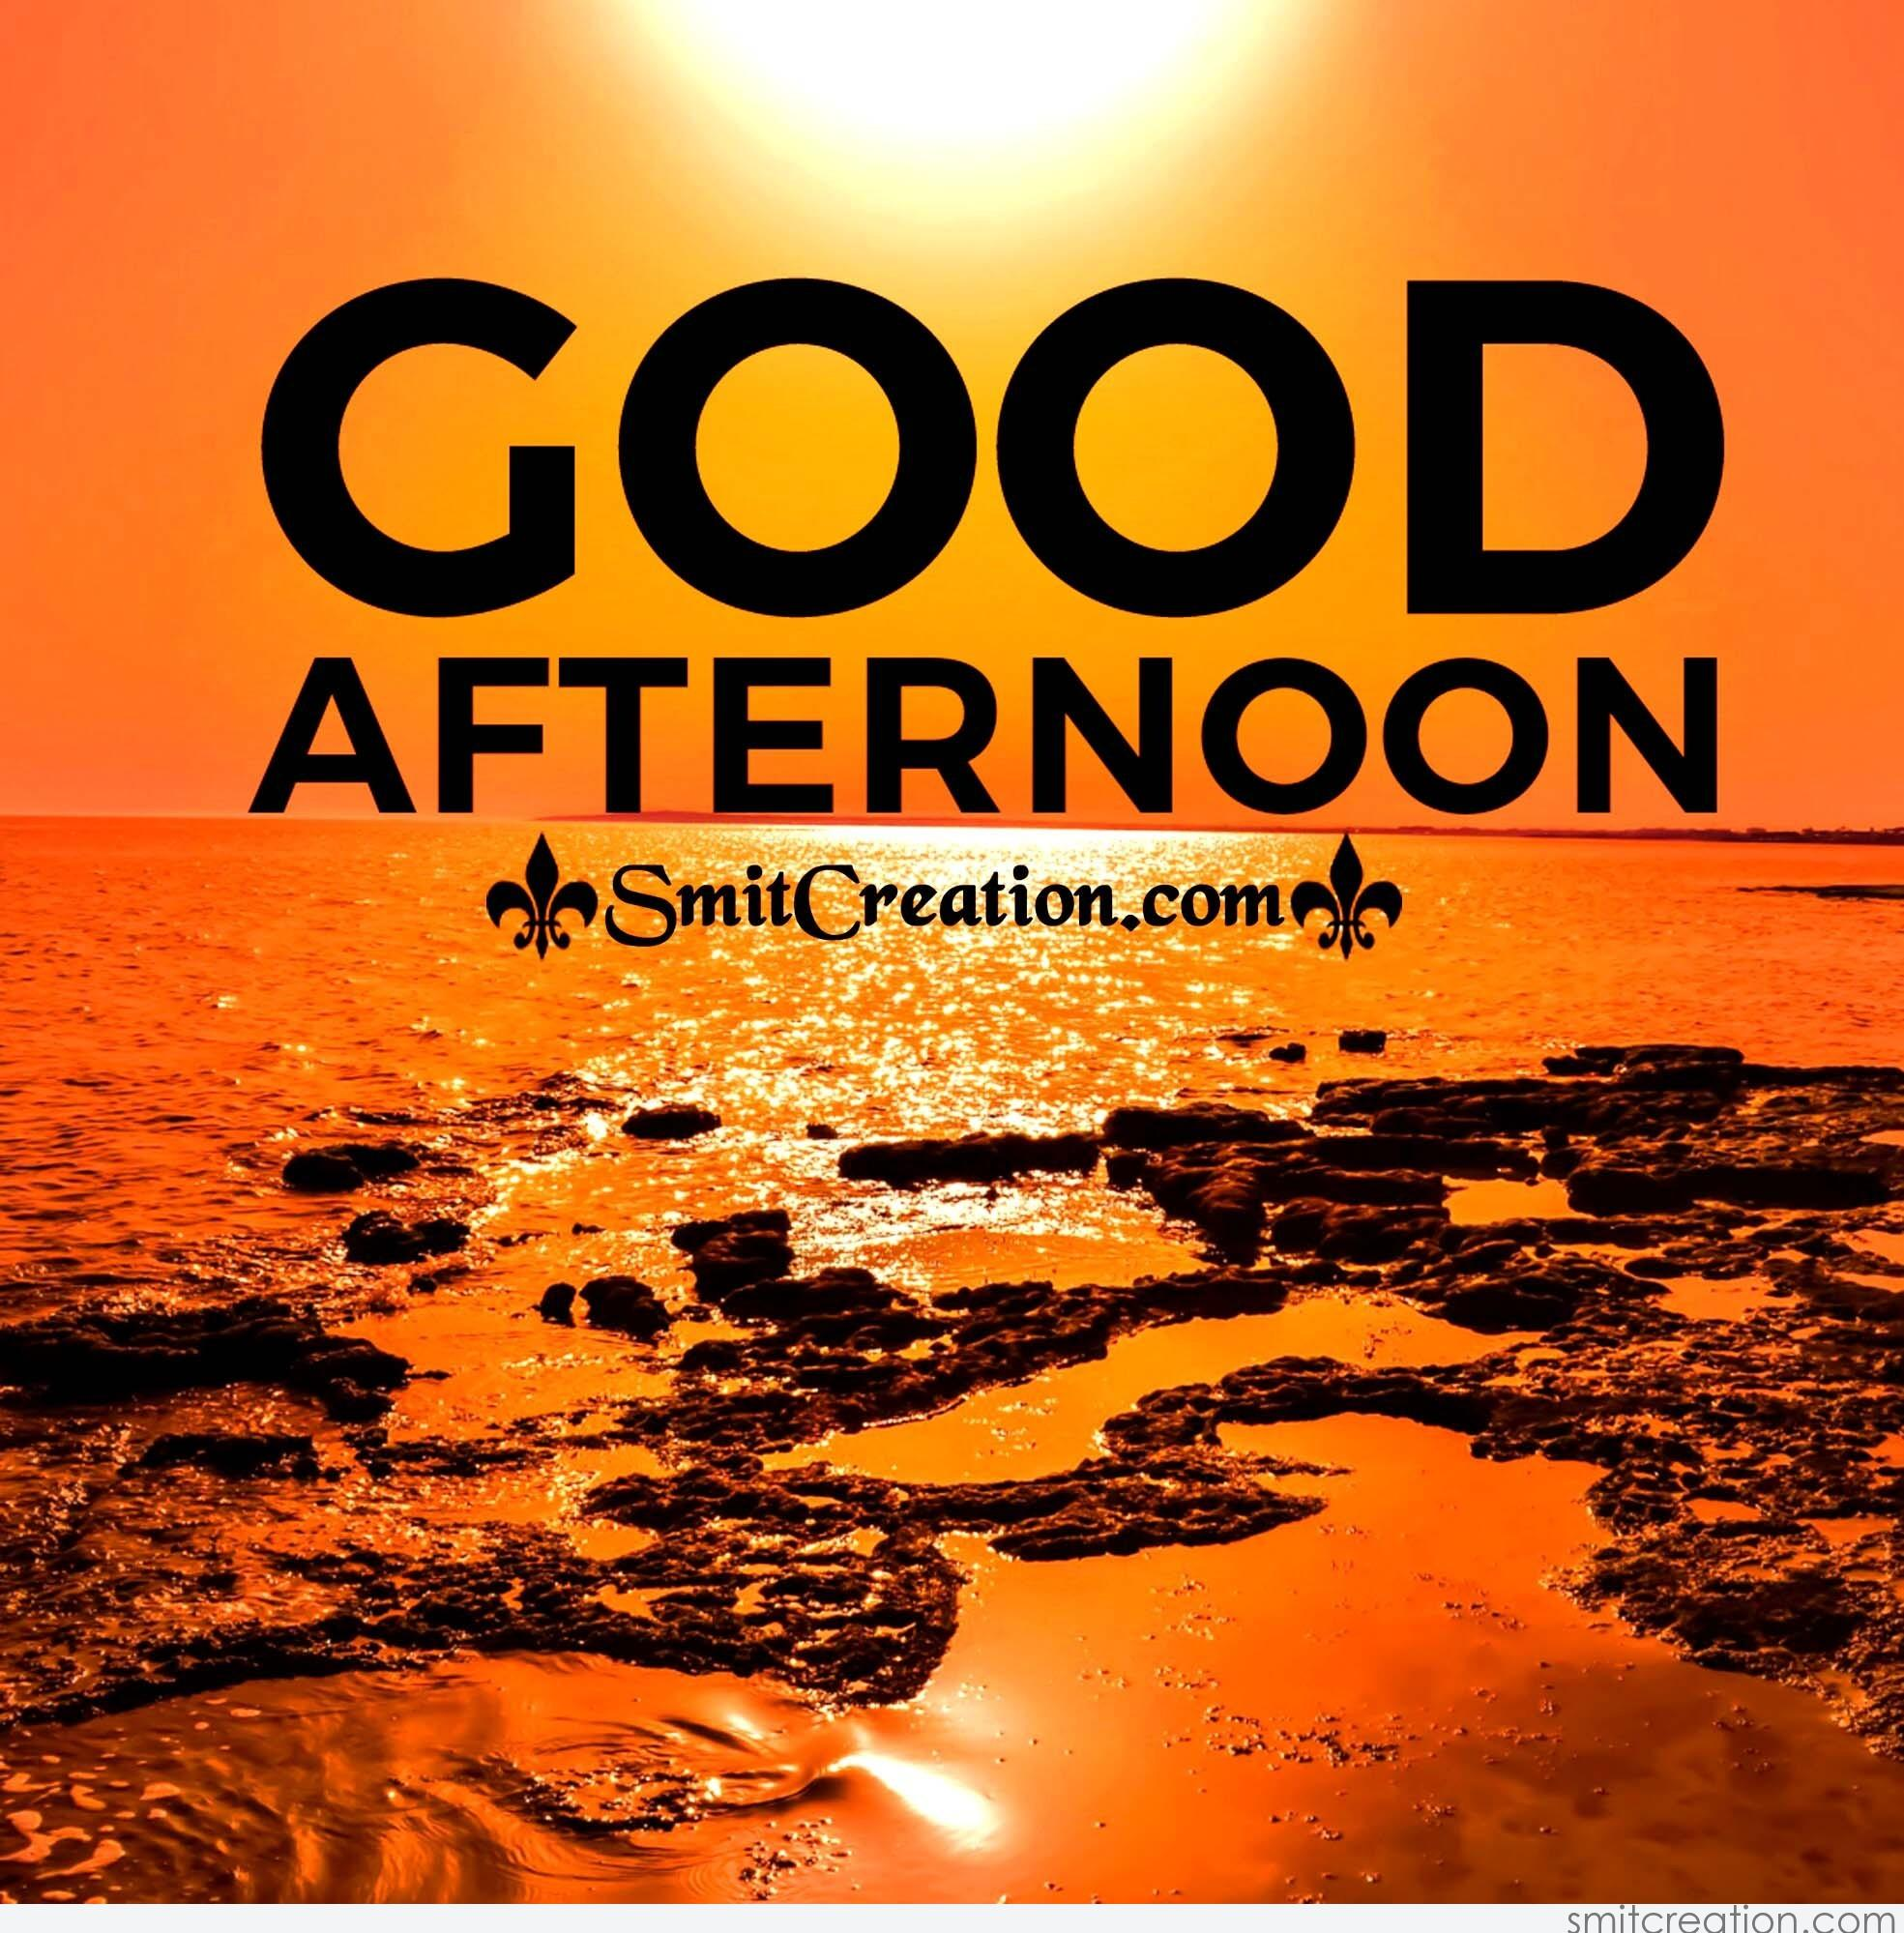 Good Afternoon Pictures And Graphics Smitcreation